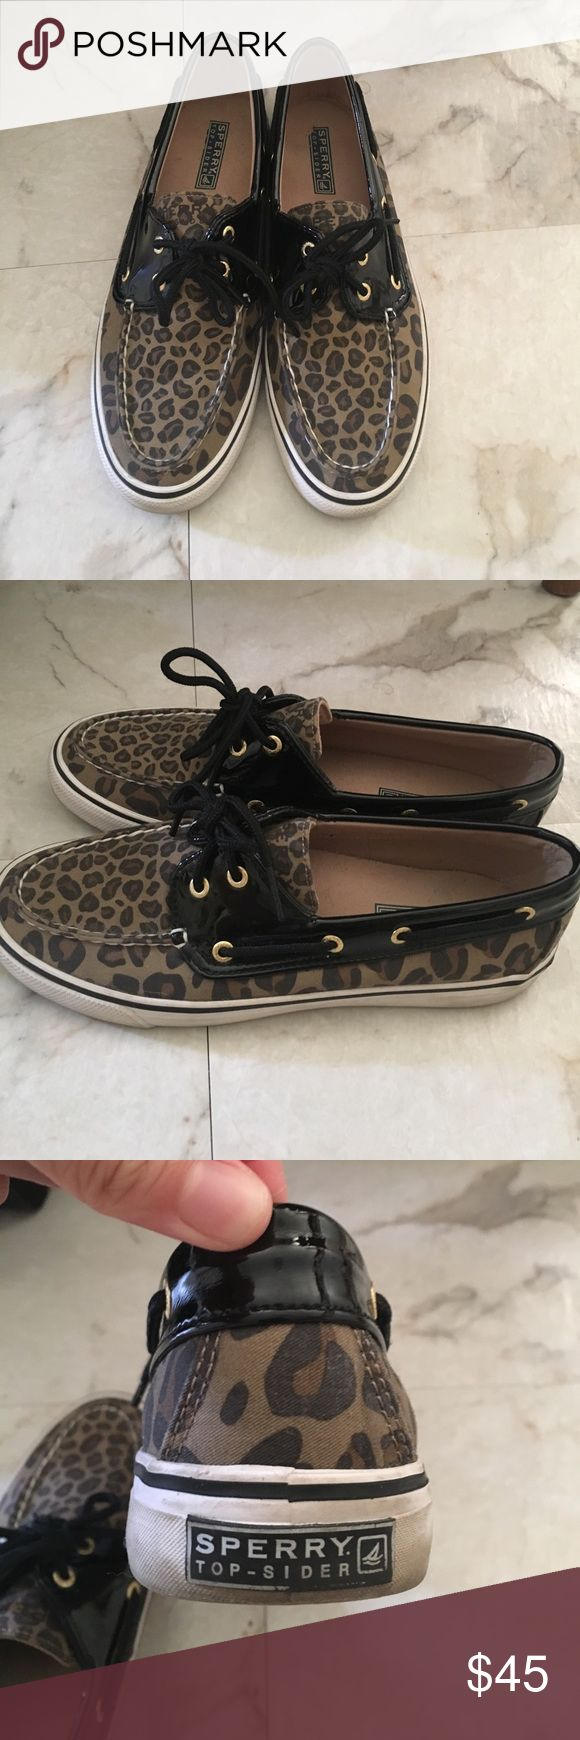 Leopard Sperry top siders Leopard Sperry top sliders - good condition - soles a little dirty (see photos) Sperry Top-Sider Shoes Flats & Loafers